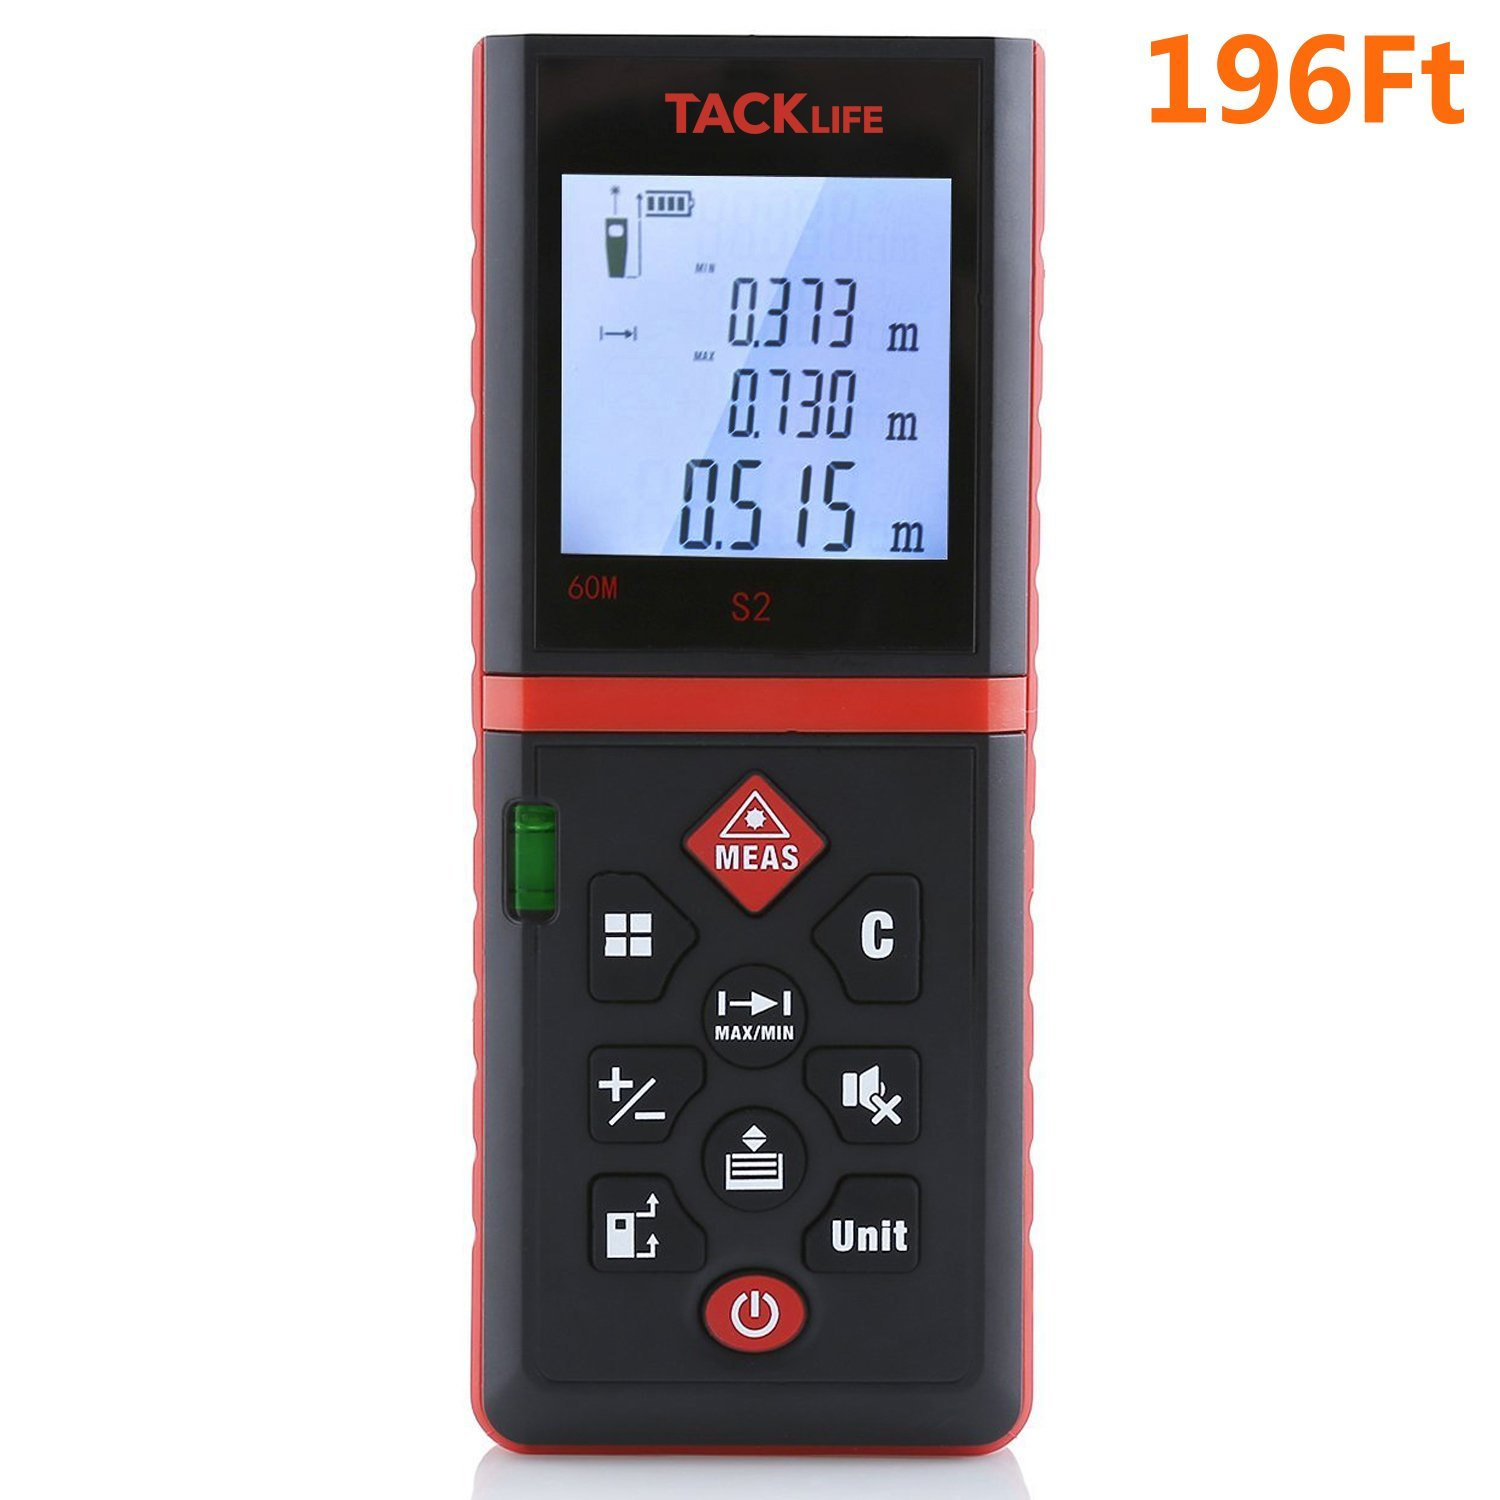 Tacklife HD Classic Advanced Laser Measure